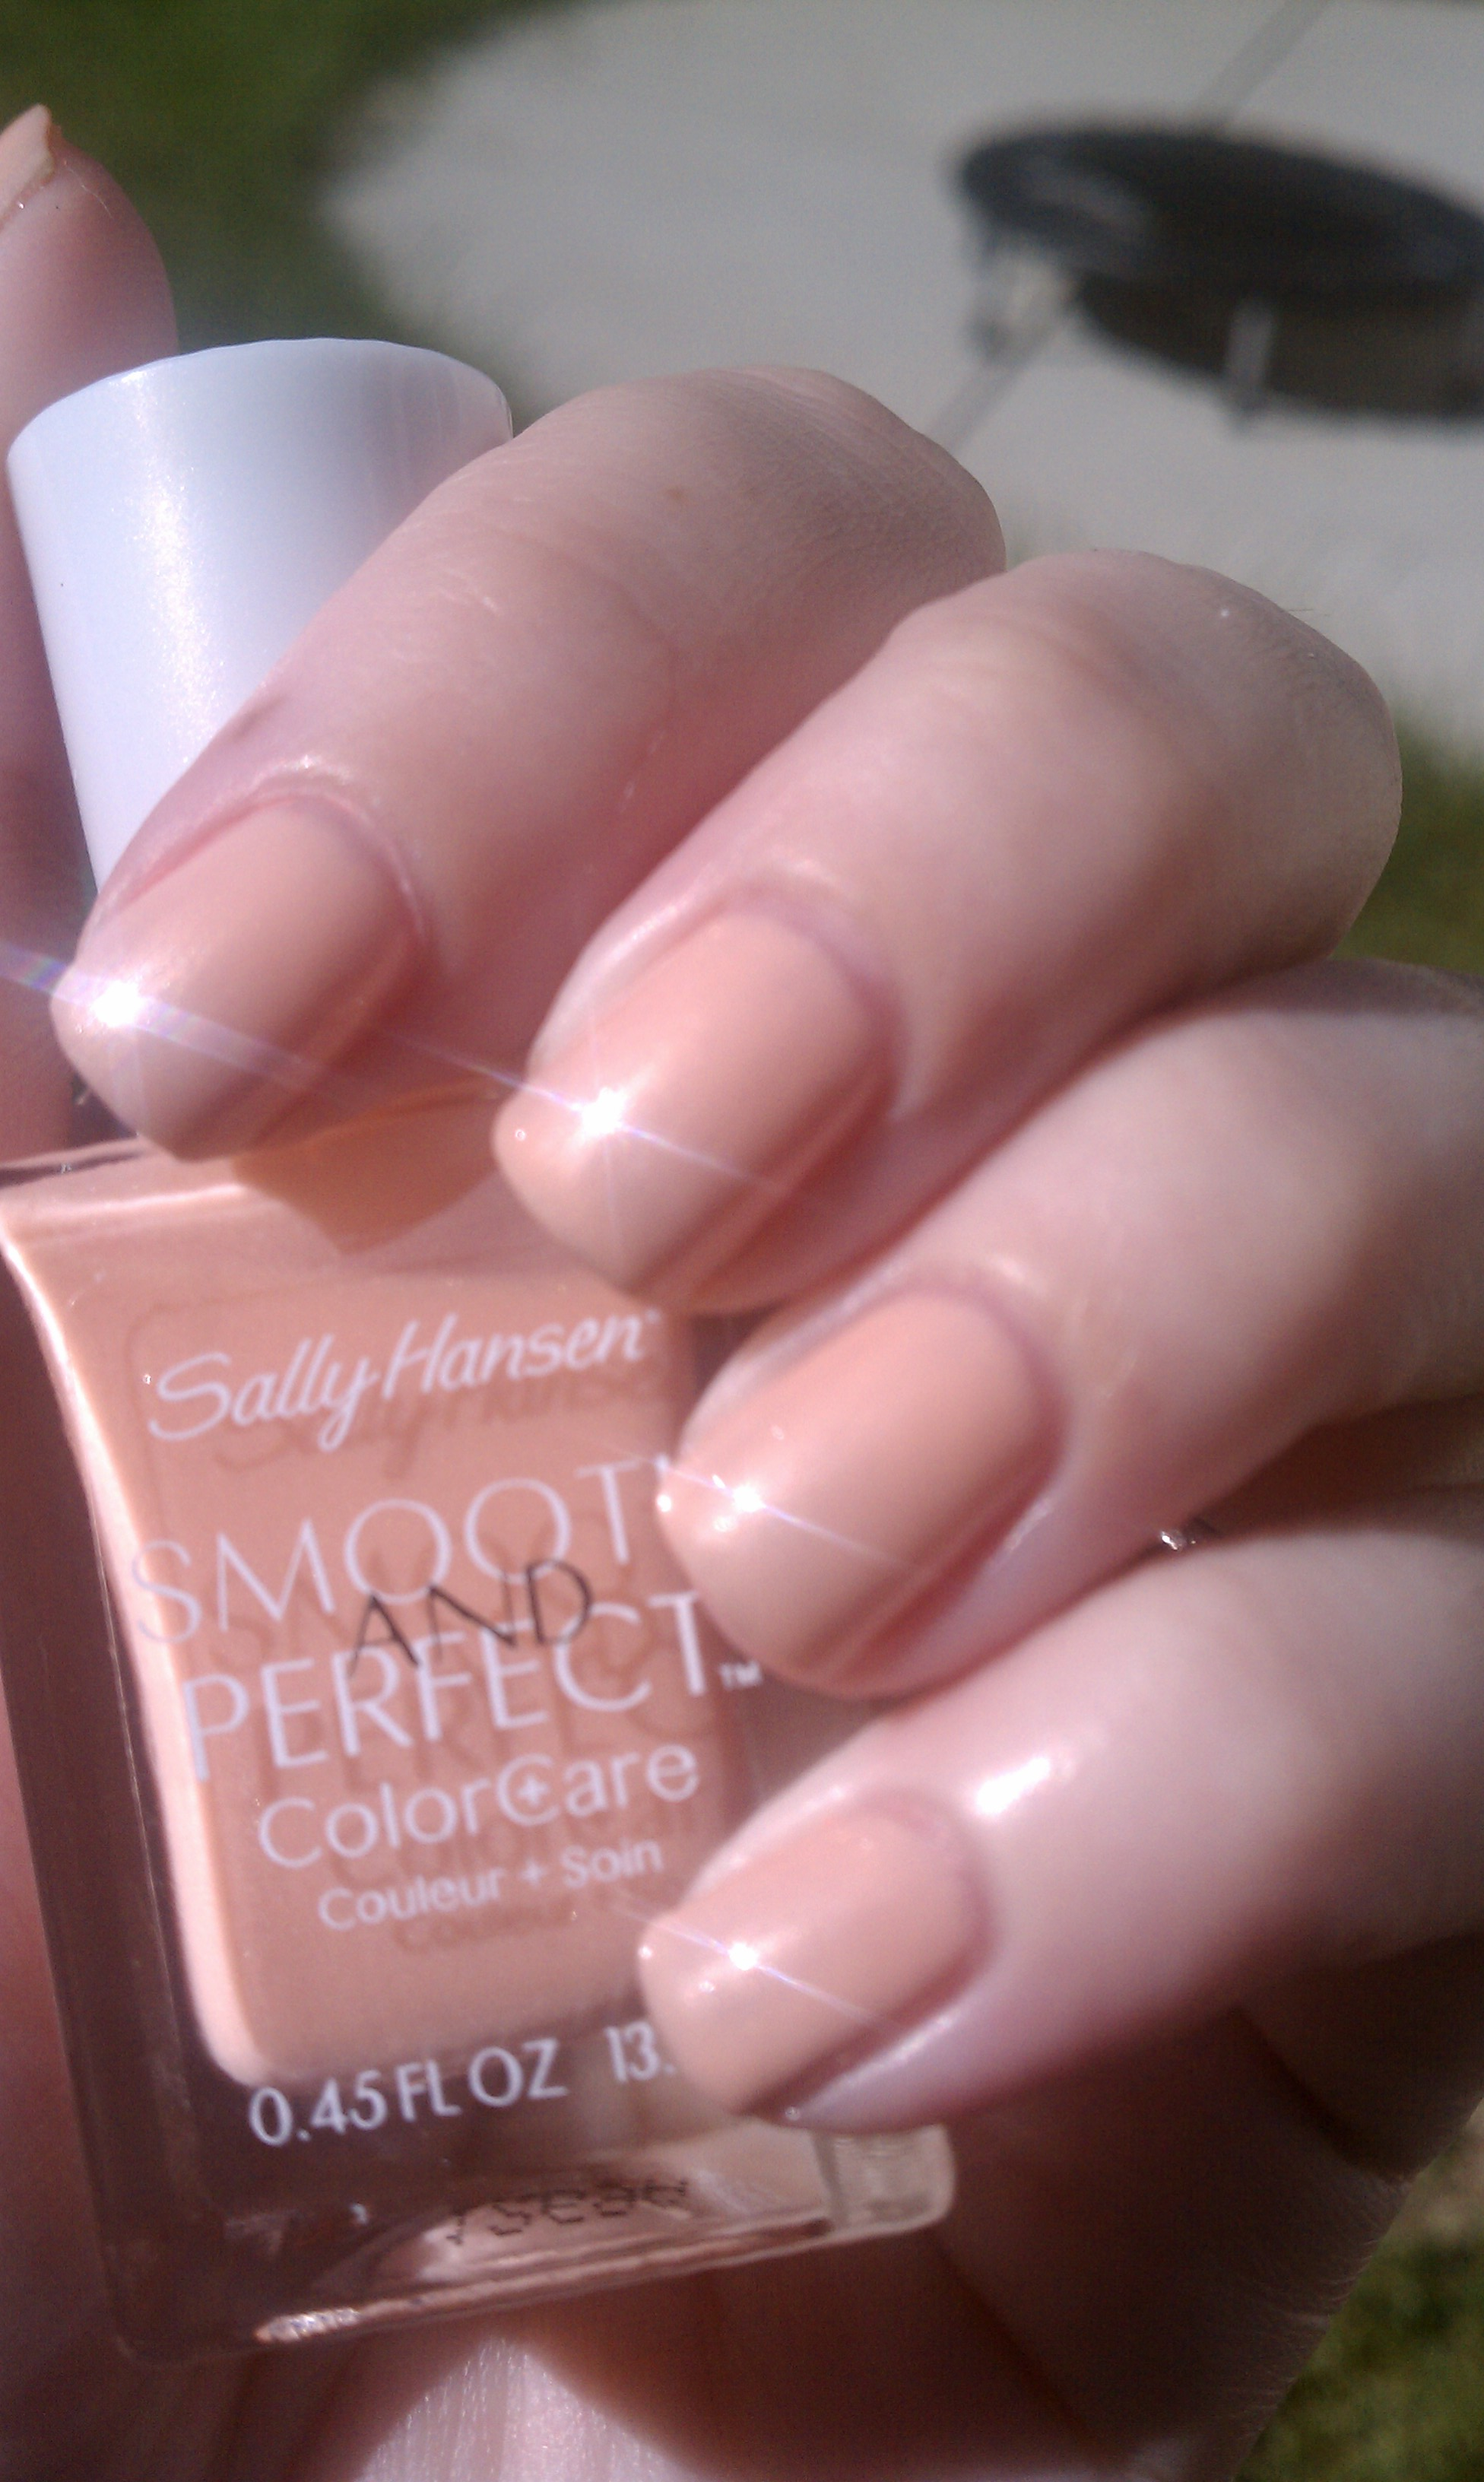 Sally Hansen Smooth and Perfect ColorCare Swatches and Review